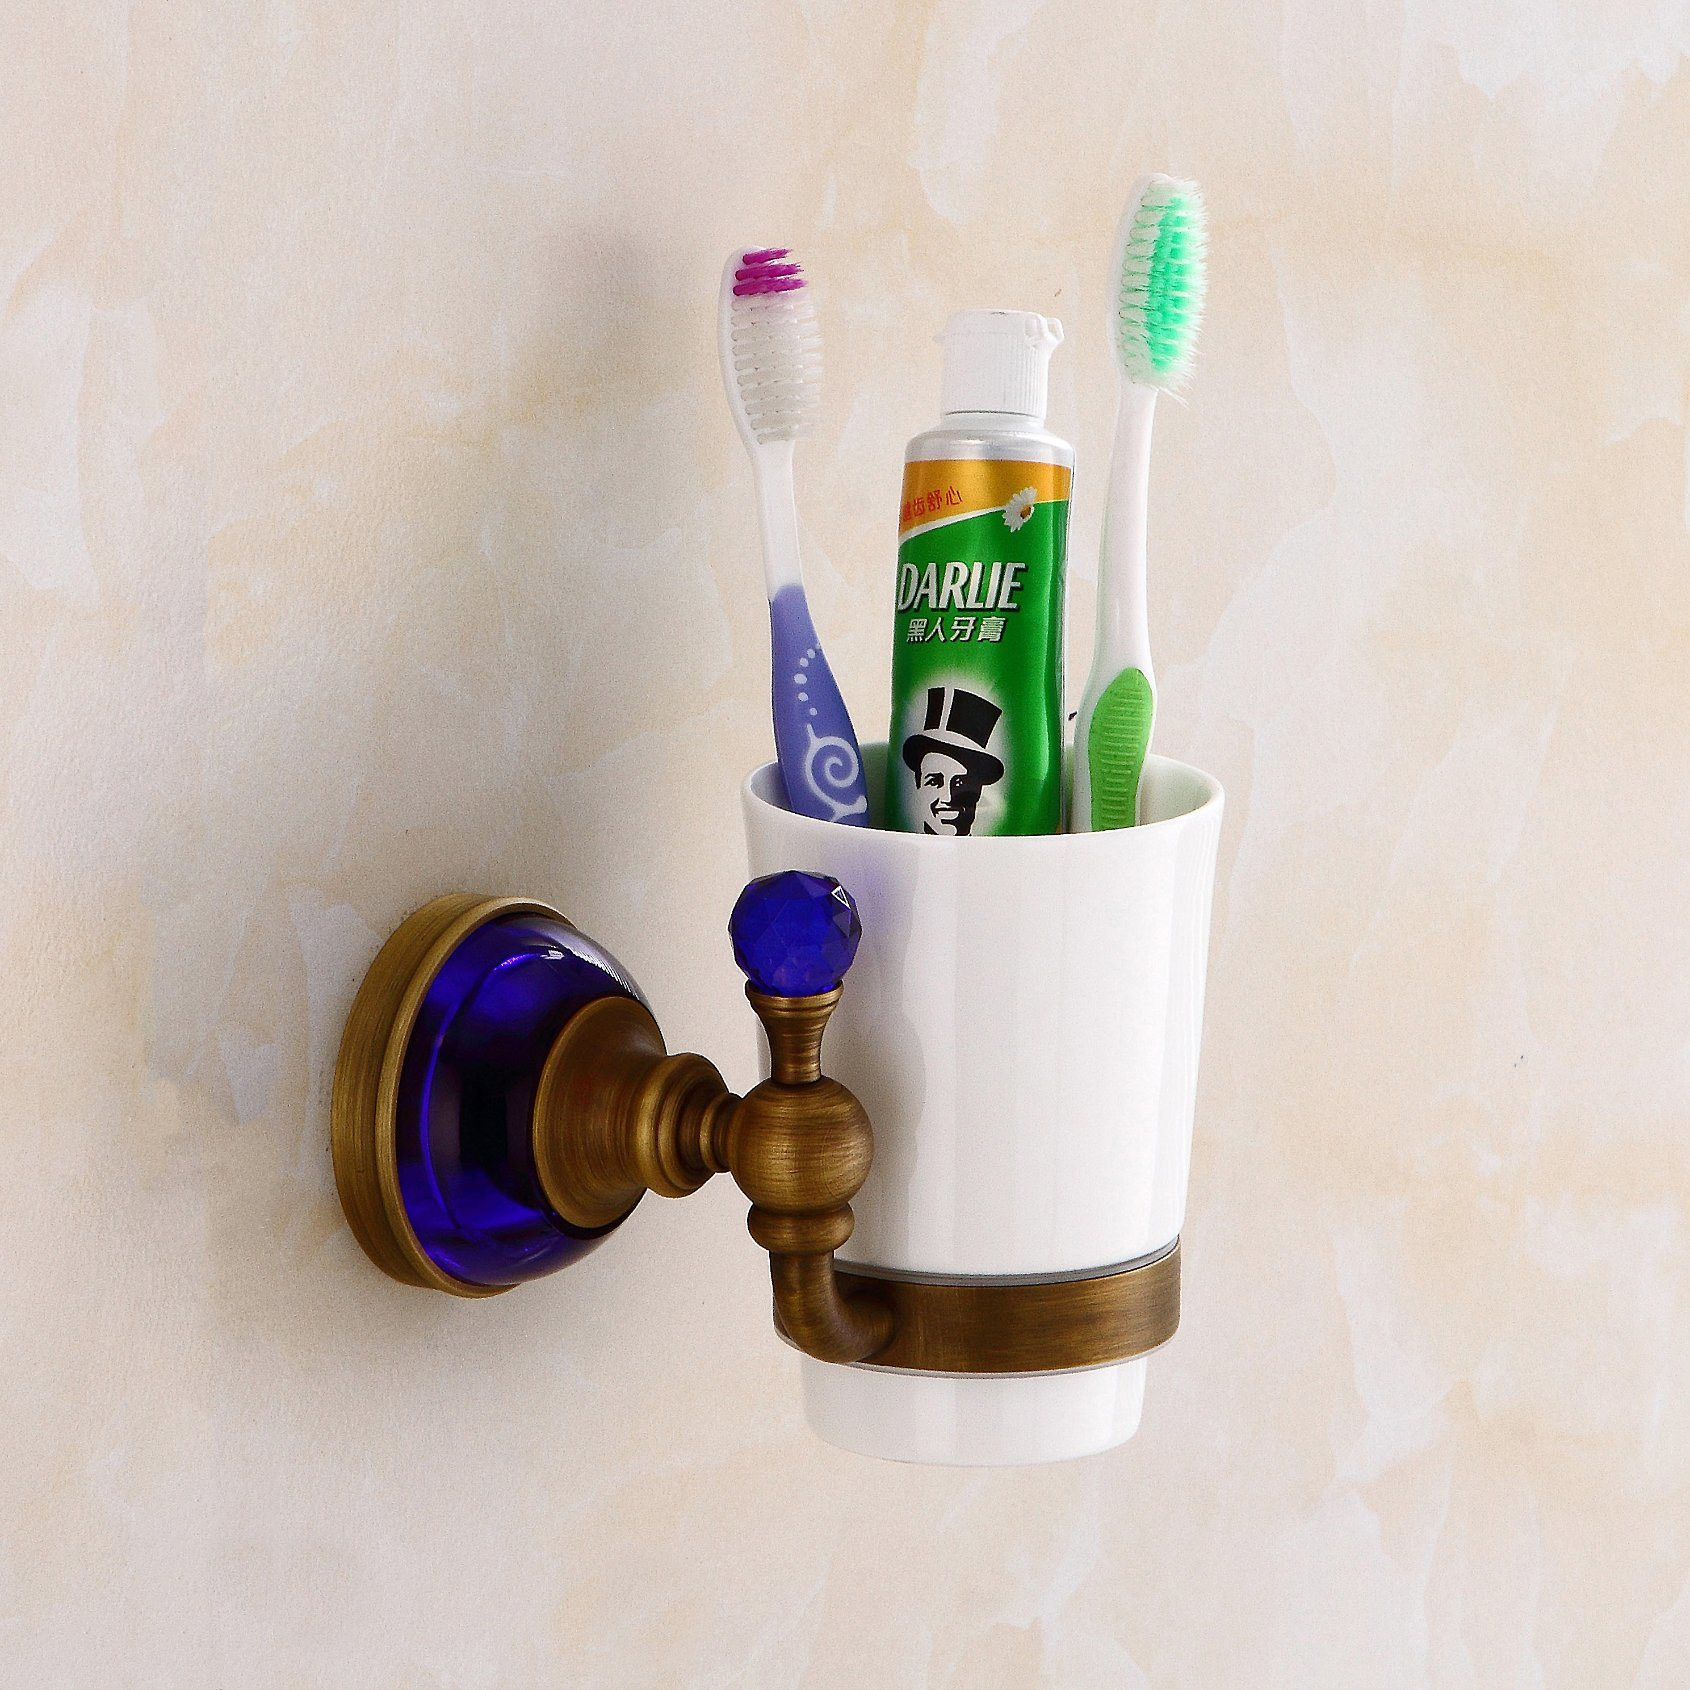 China Flg Bathroom Fitting Single Antique Toothbrush Holder Wall Mounted China Toothbrush Holder And Single Toothbrush Holder Price